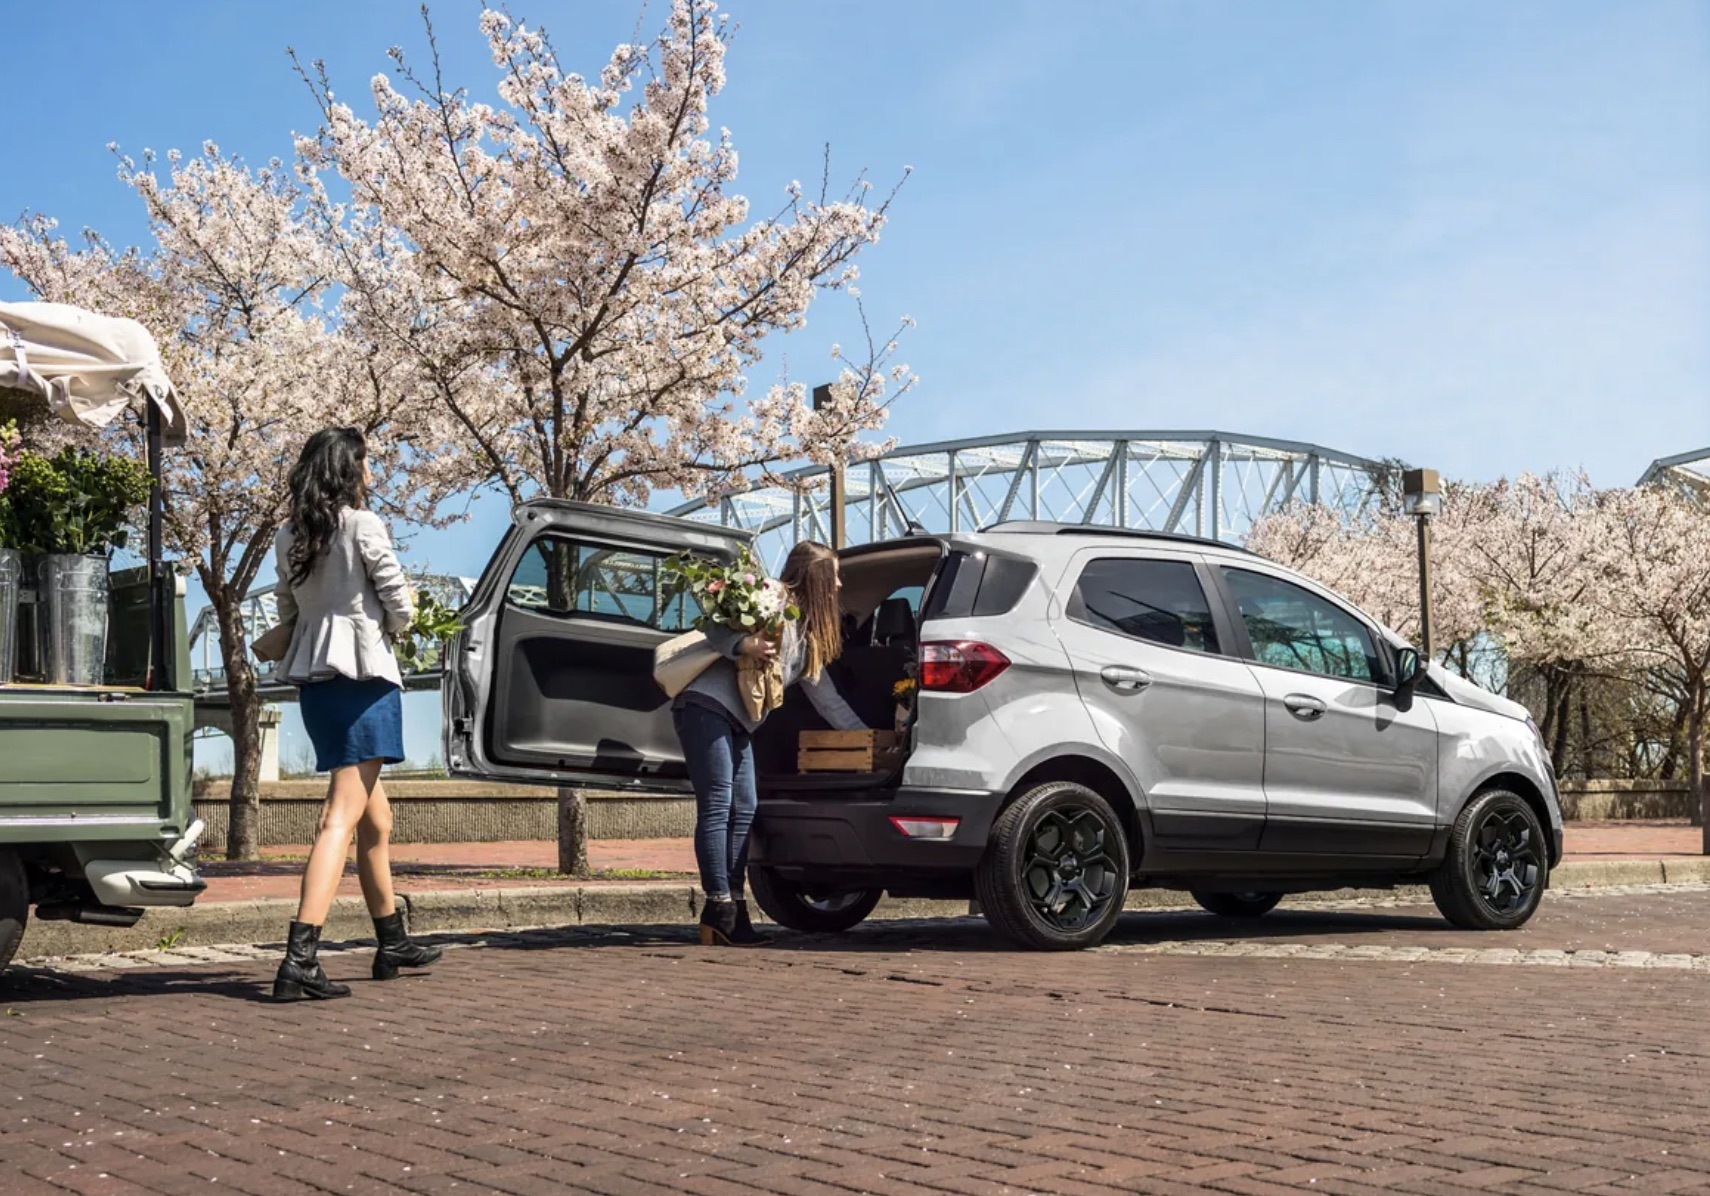 A silver 2021 Ford EcoSport parked while a woman is putting flowers in the trunk